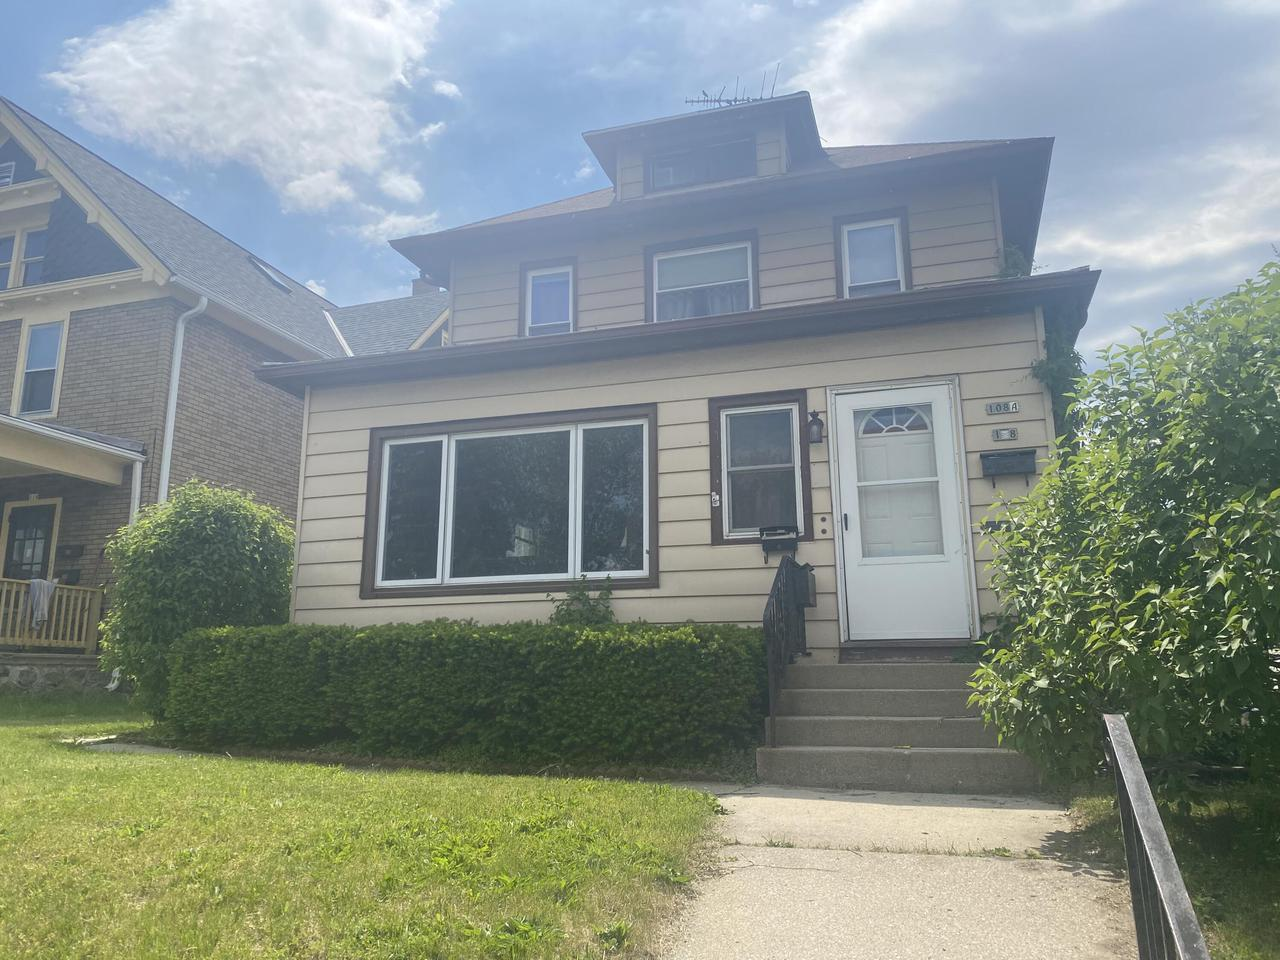 108 S 7th Ave AVENUE 108A, WEST BEND, WI 53095